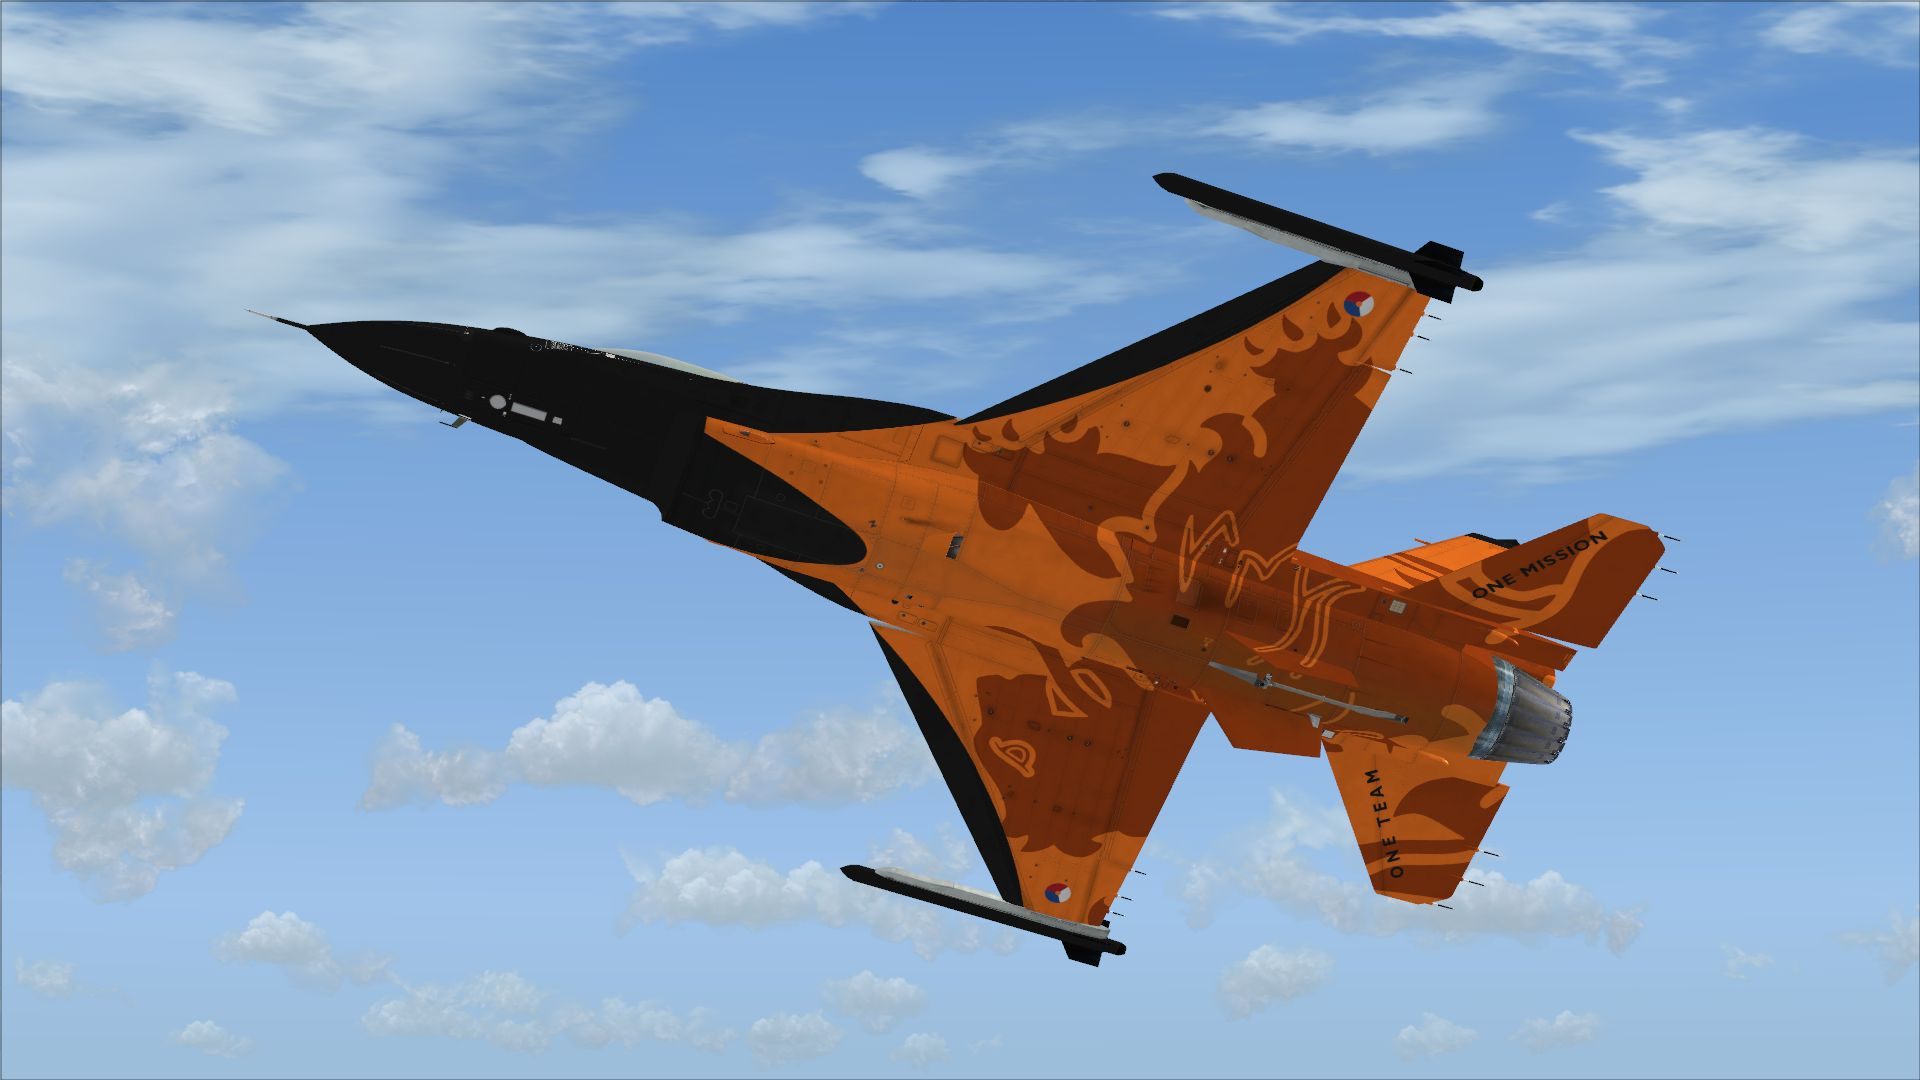 FSX Insider | Aerosoft F-16 Fighting Falcon Updated With RNLAF Liveries